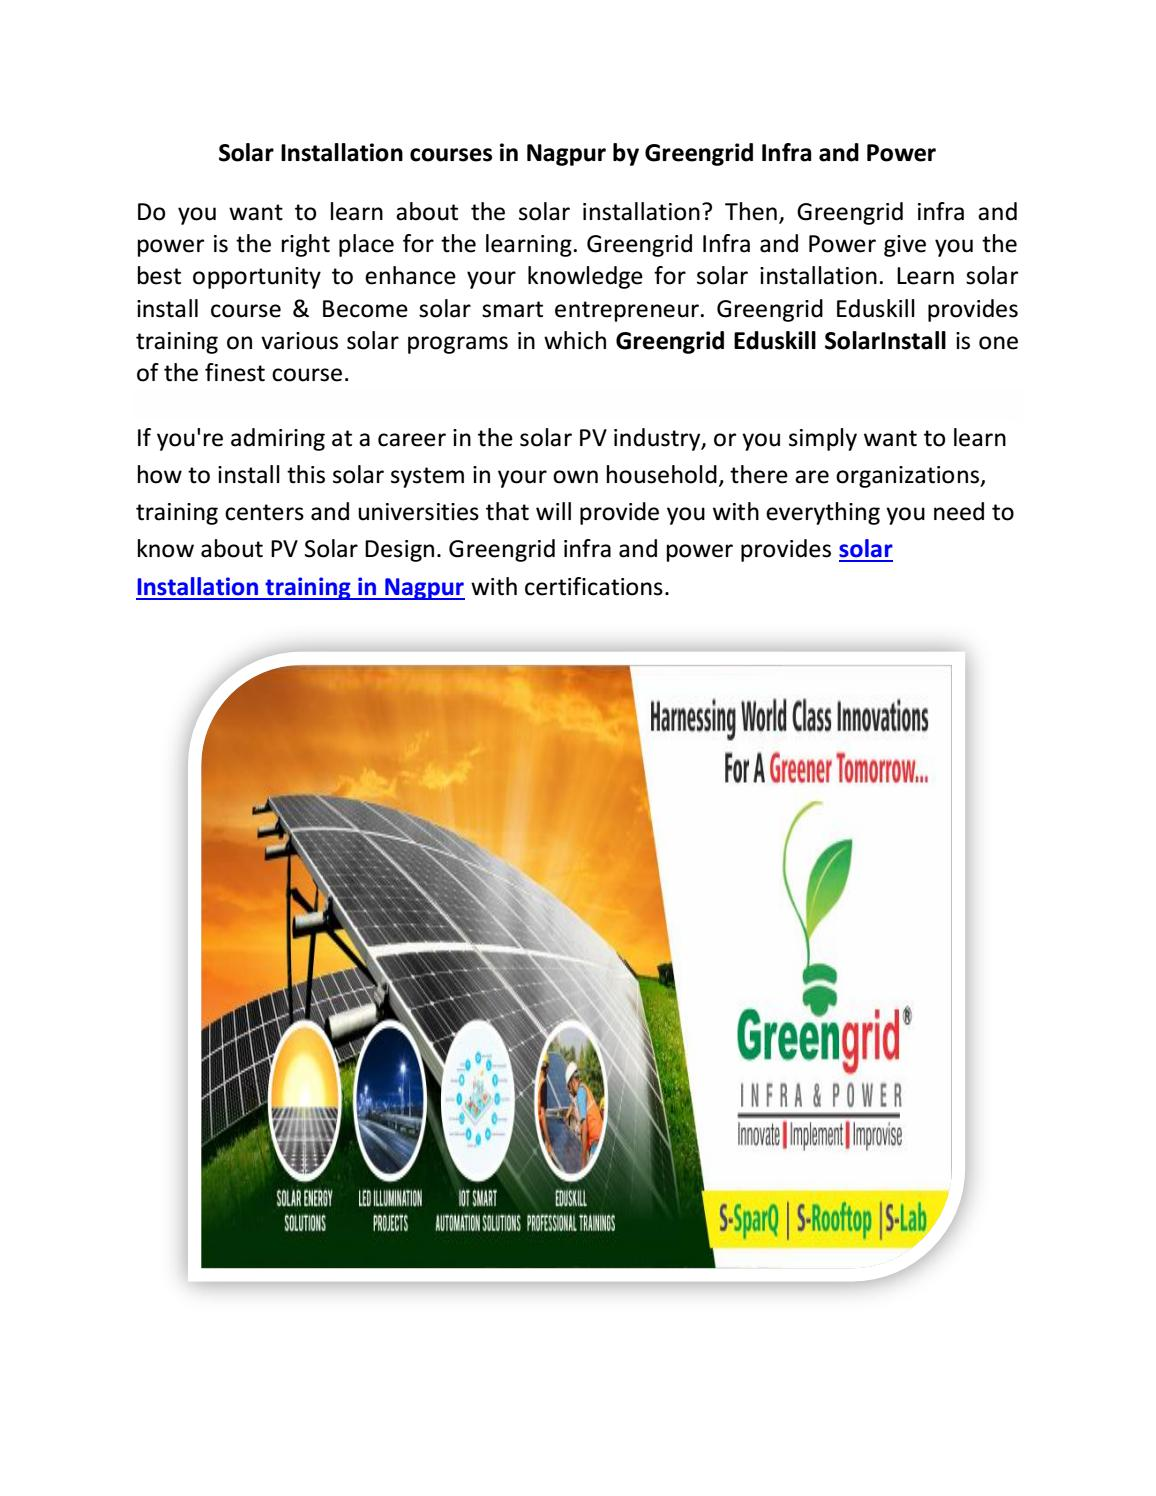 Solar Installation courses in Nagpur by Greengrid Infra and Power by